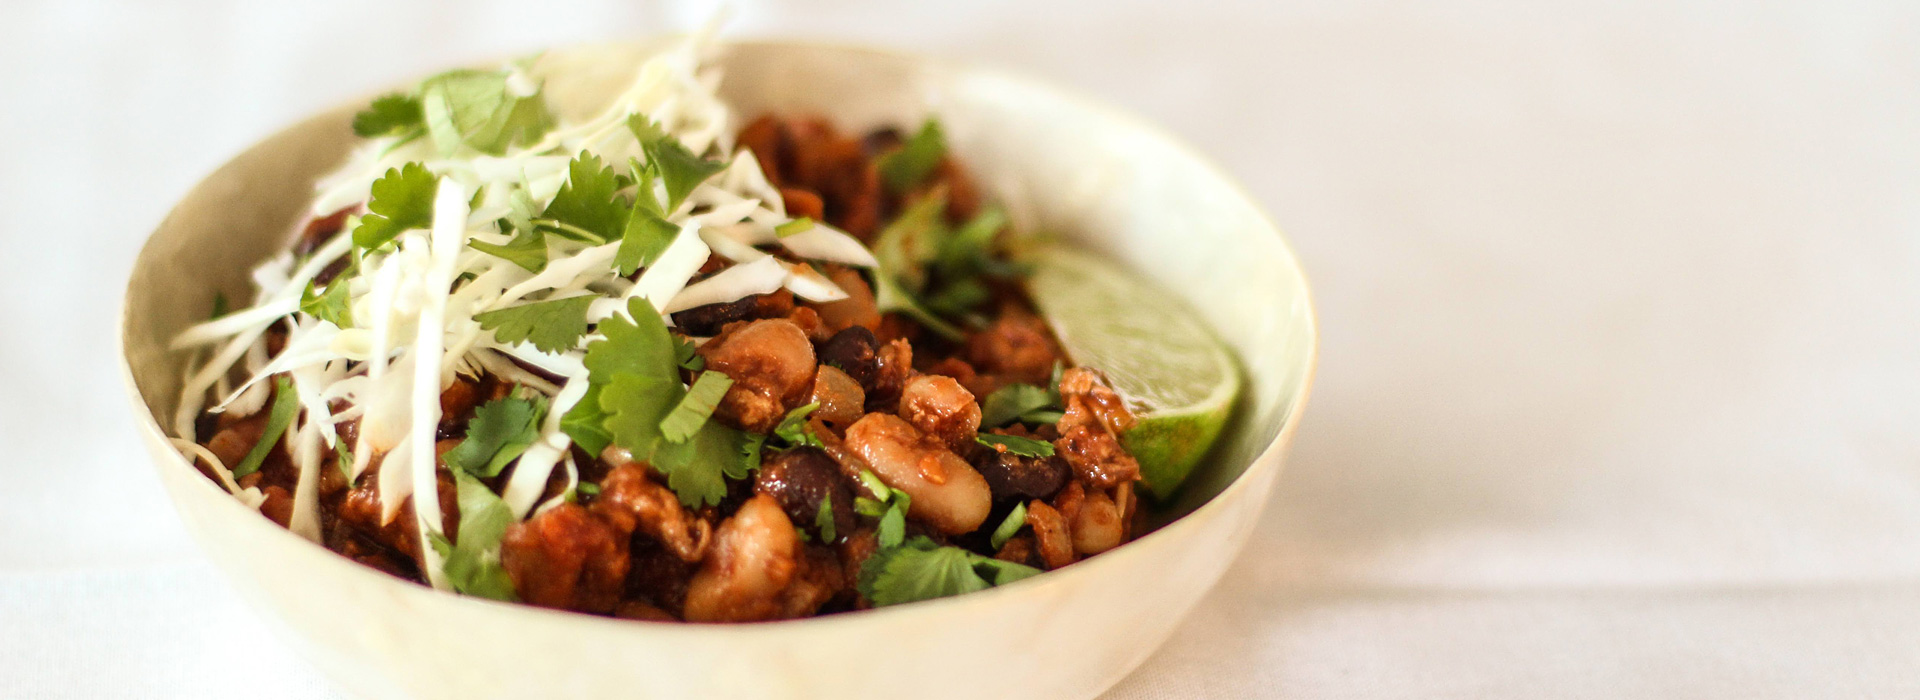 <p>Using ground chipotle peppers in place of standard chili powder makes this chili savory and subtly smoky. Dried Plum Purée enhances the flavor even more, making this ground turkey chili taste rich even though it's leaner than versions made with ground beef.</p>